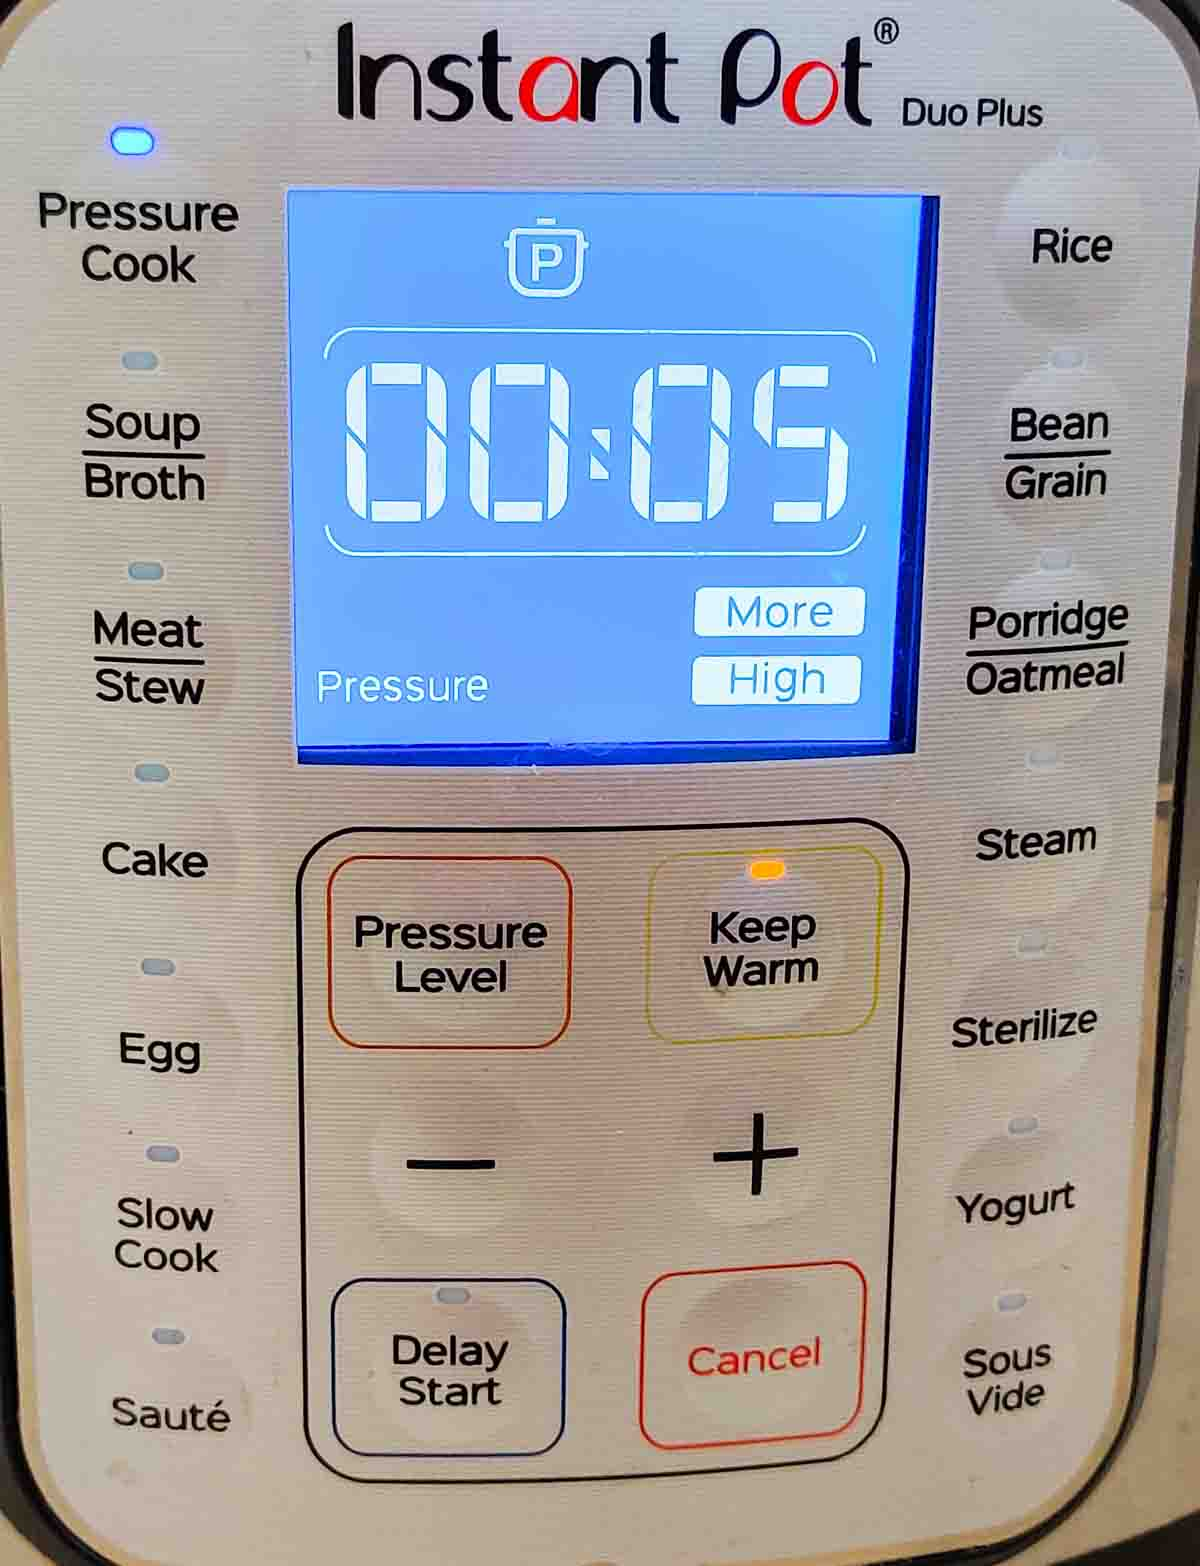 Display panel of an Instant Pot in Pressure cook mode